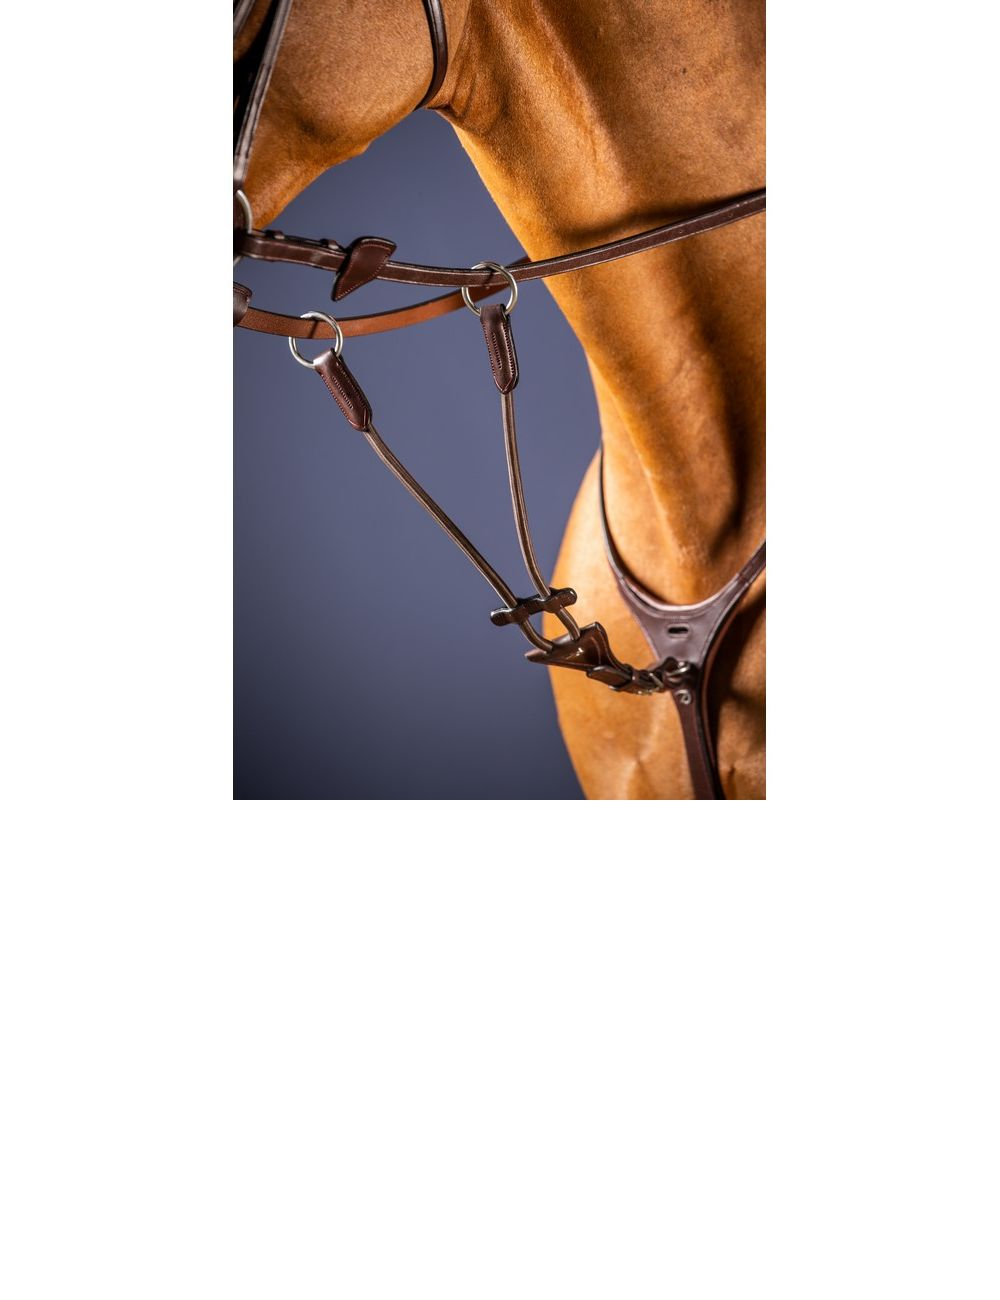 Dyon New English Collection elastic martingale attachment - 2